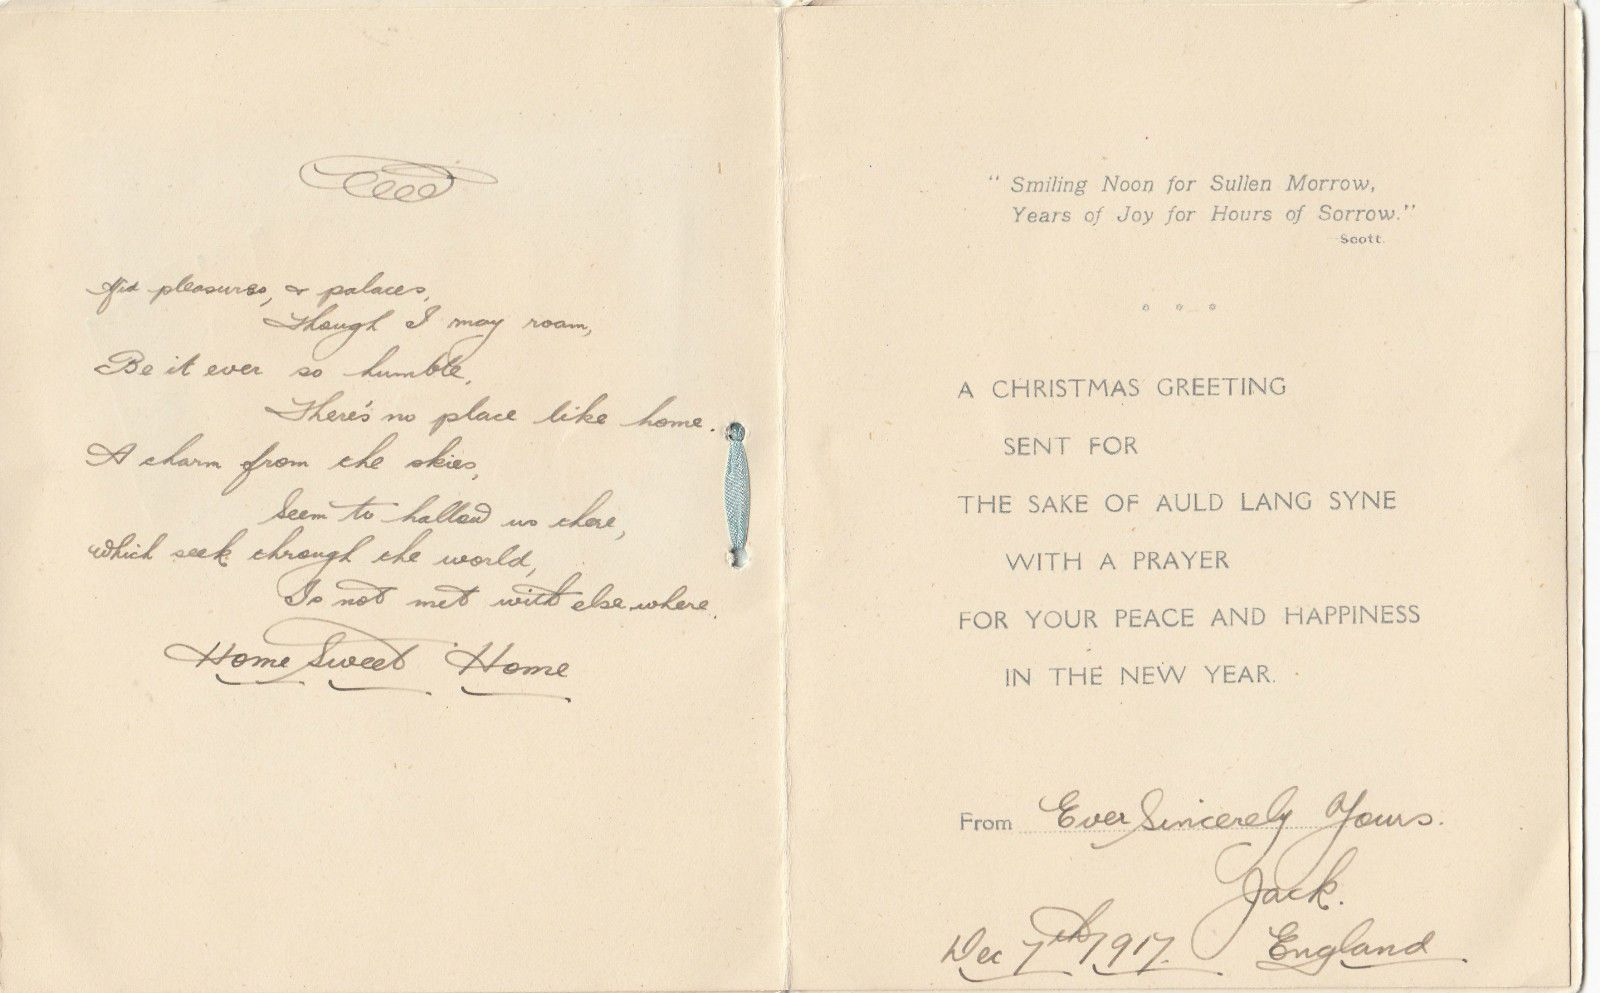 Ww1 anzac australian christmas greetings card poem 1917 from soldier ww1 anzac australian christmas greetings card poem 1917 from soldier jack rare kristyandbryce Gallery